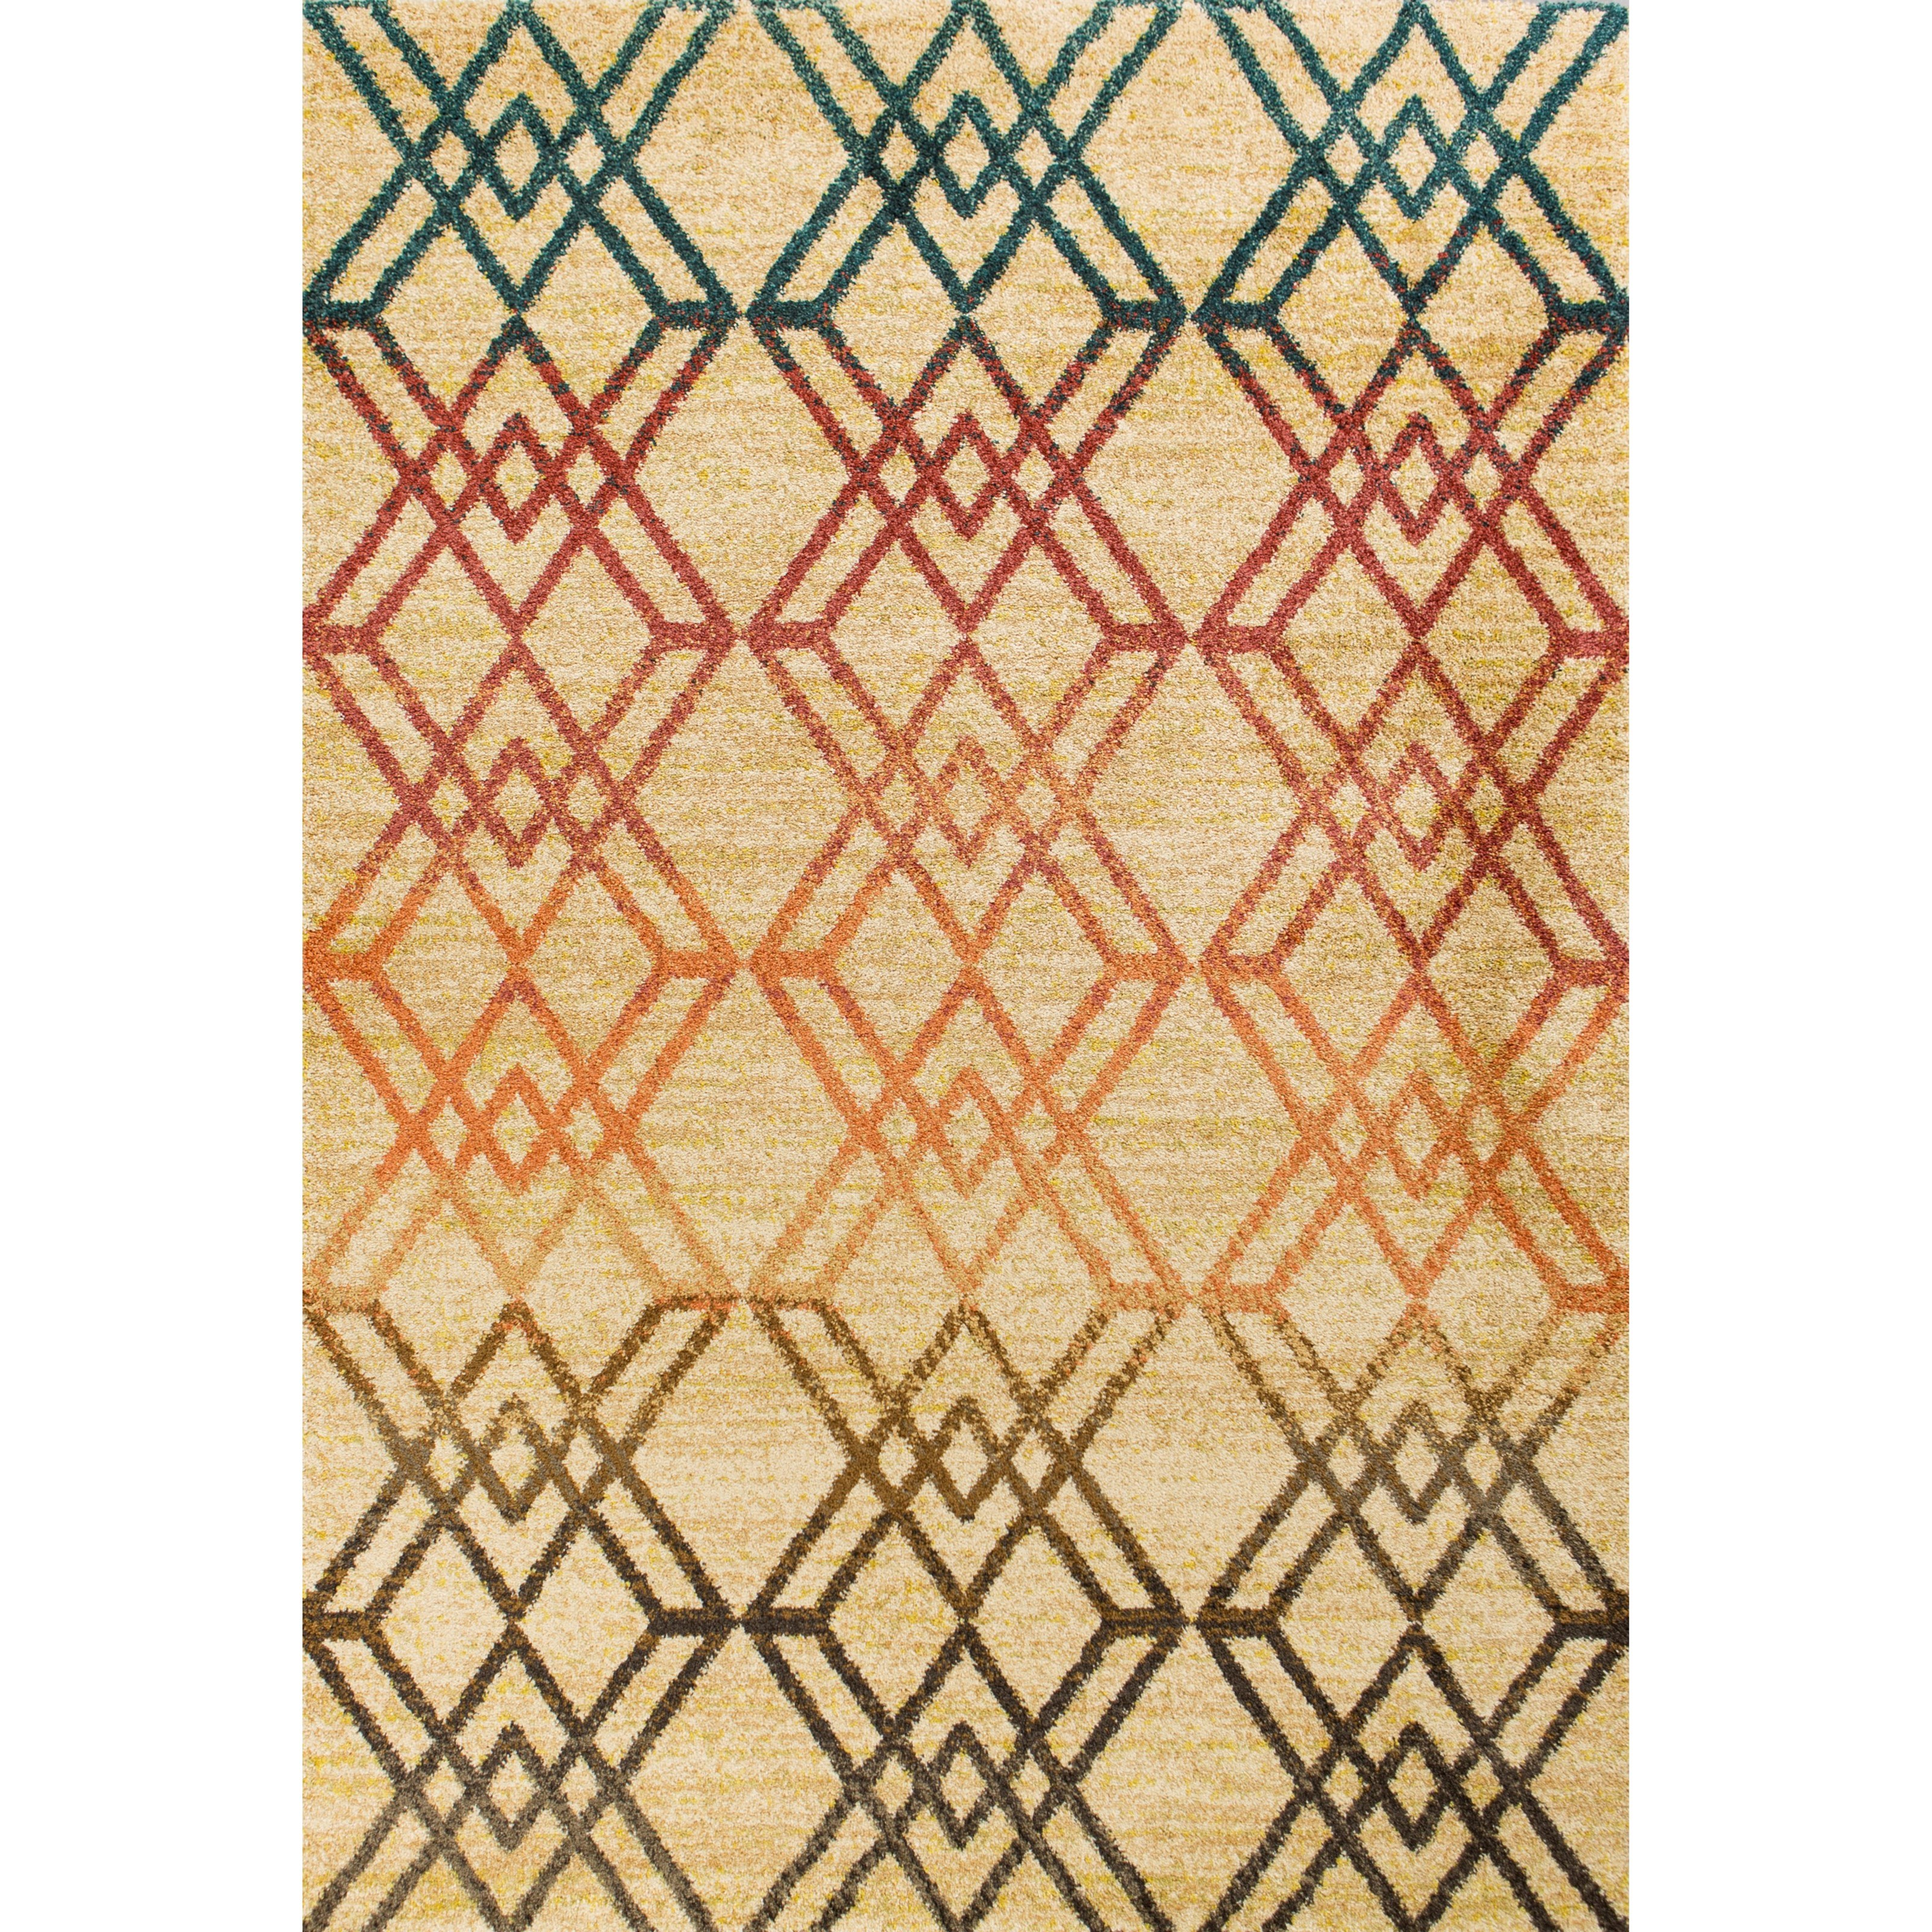 "Barcelona 11'2"" X 7'10"" Area Rug by Kas at Zak's Home"